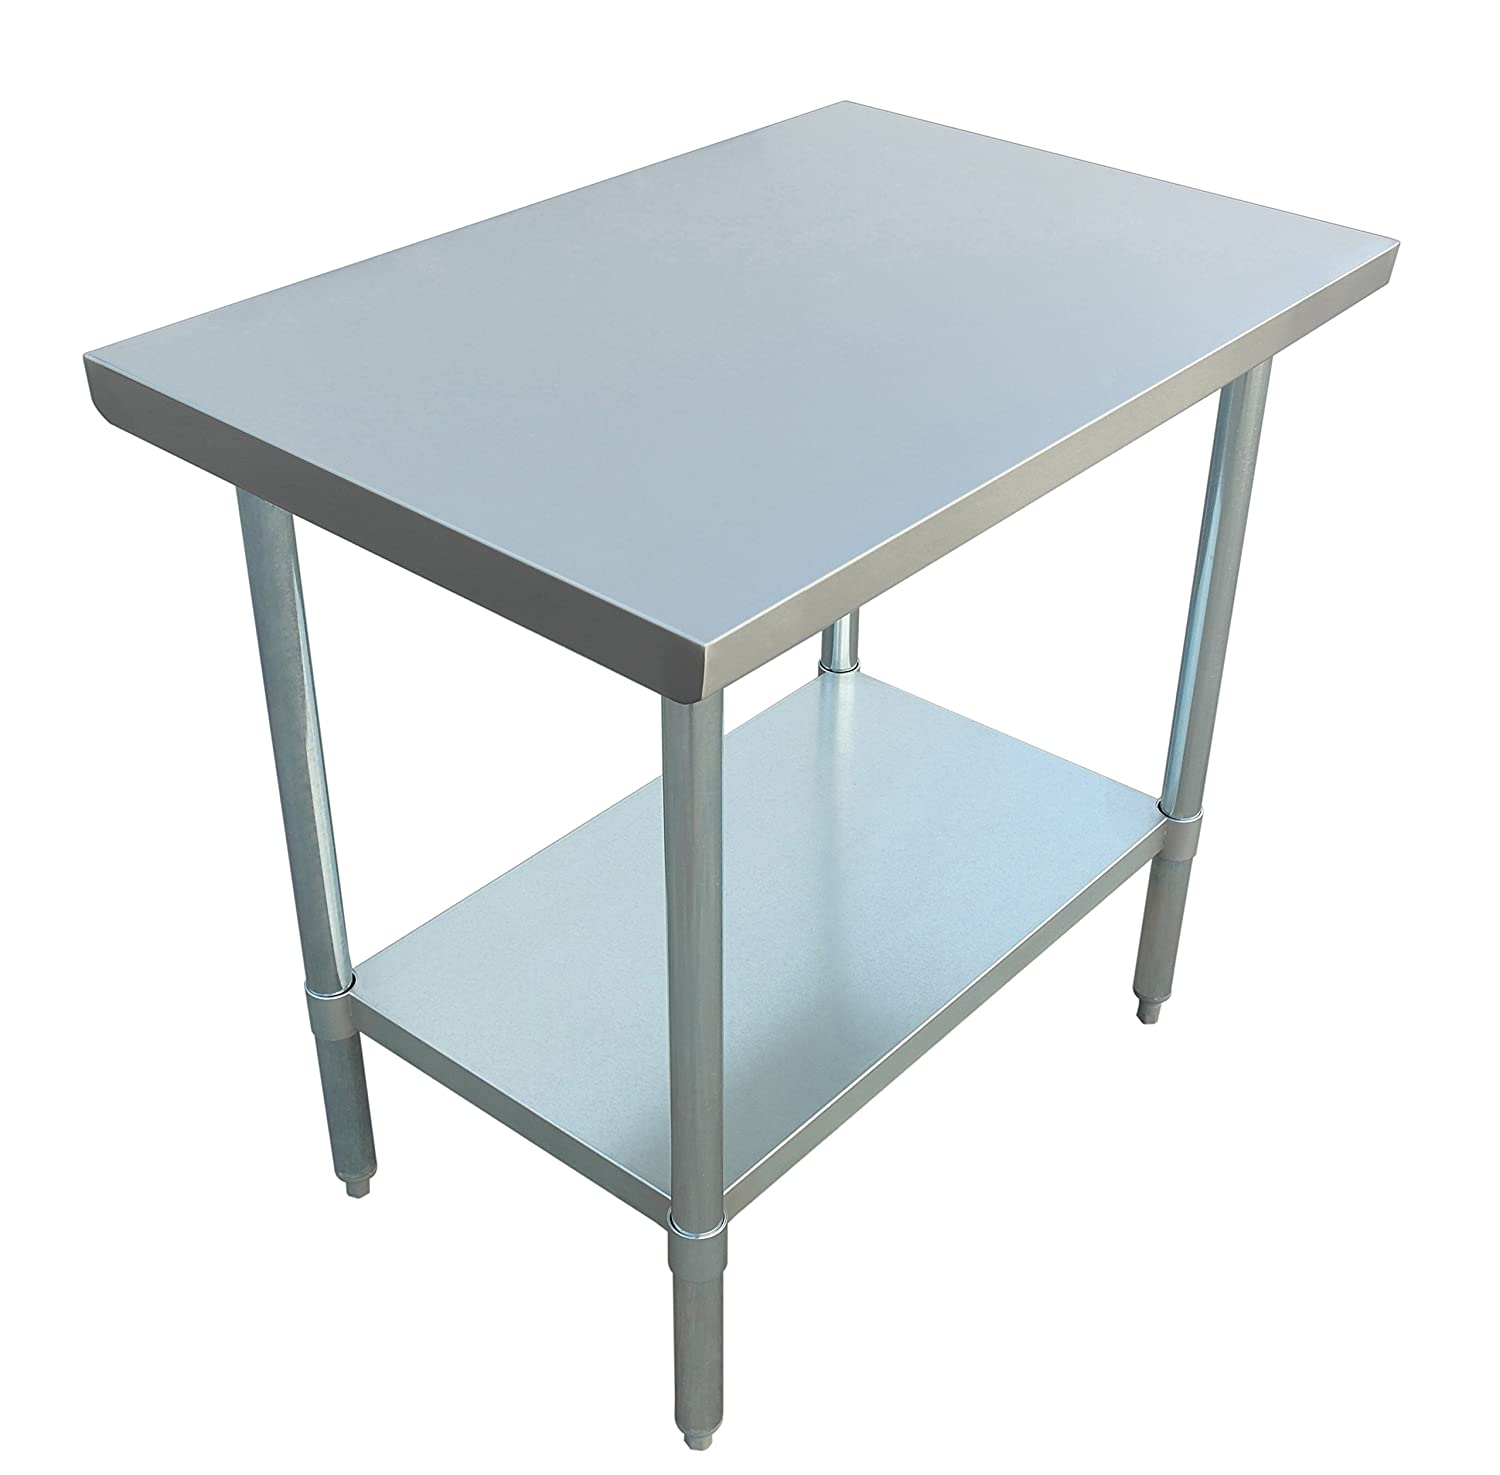 JET Stainless Steel Commercial Utility NSF Kitchen Prep and Work Table Holds Up to 700 Pounds with Adjustable Galvanized Undershelf for Restaurants and Homes, 36 inch Long x 24 inch Wide, Silver